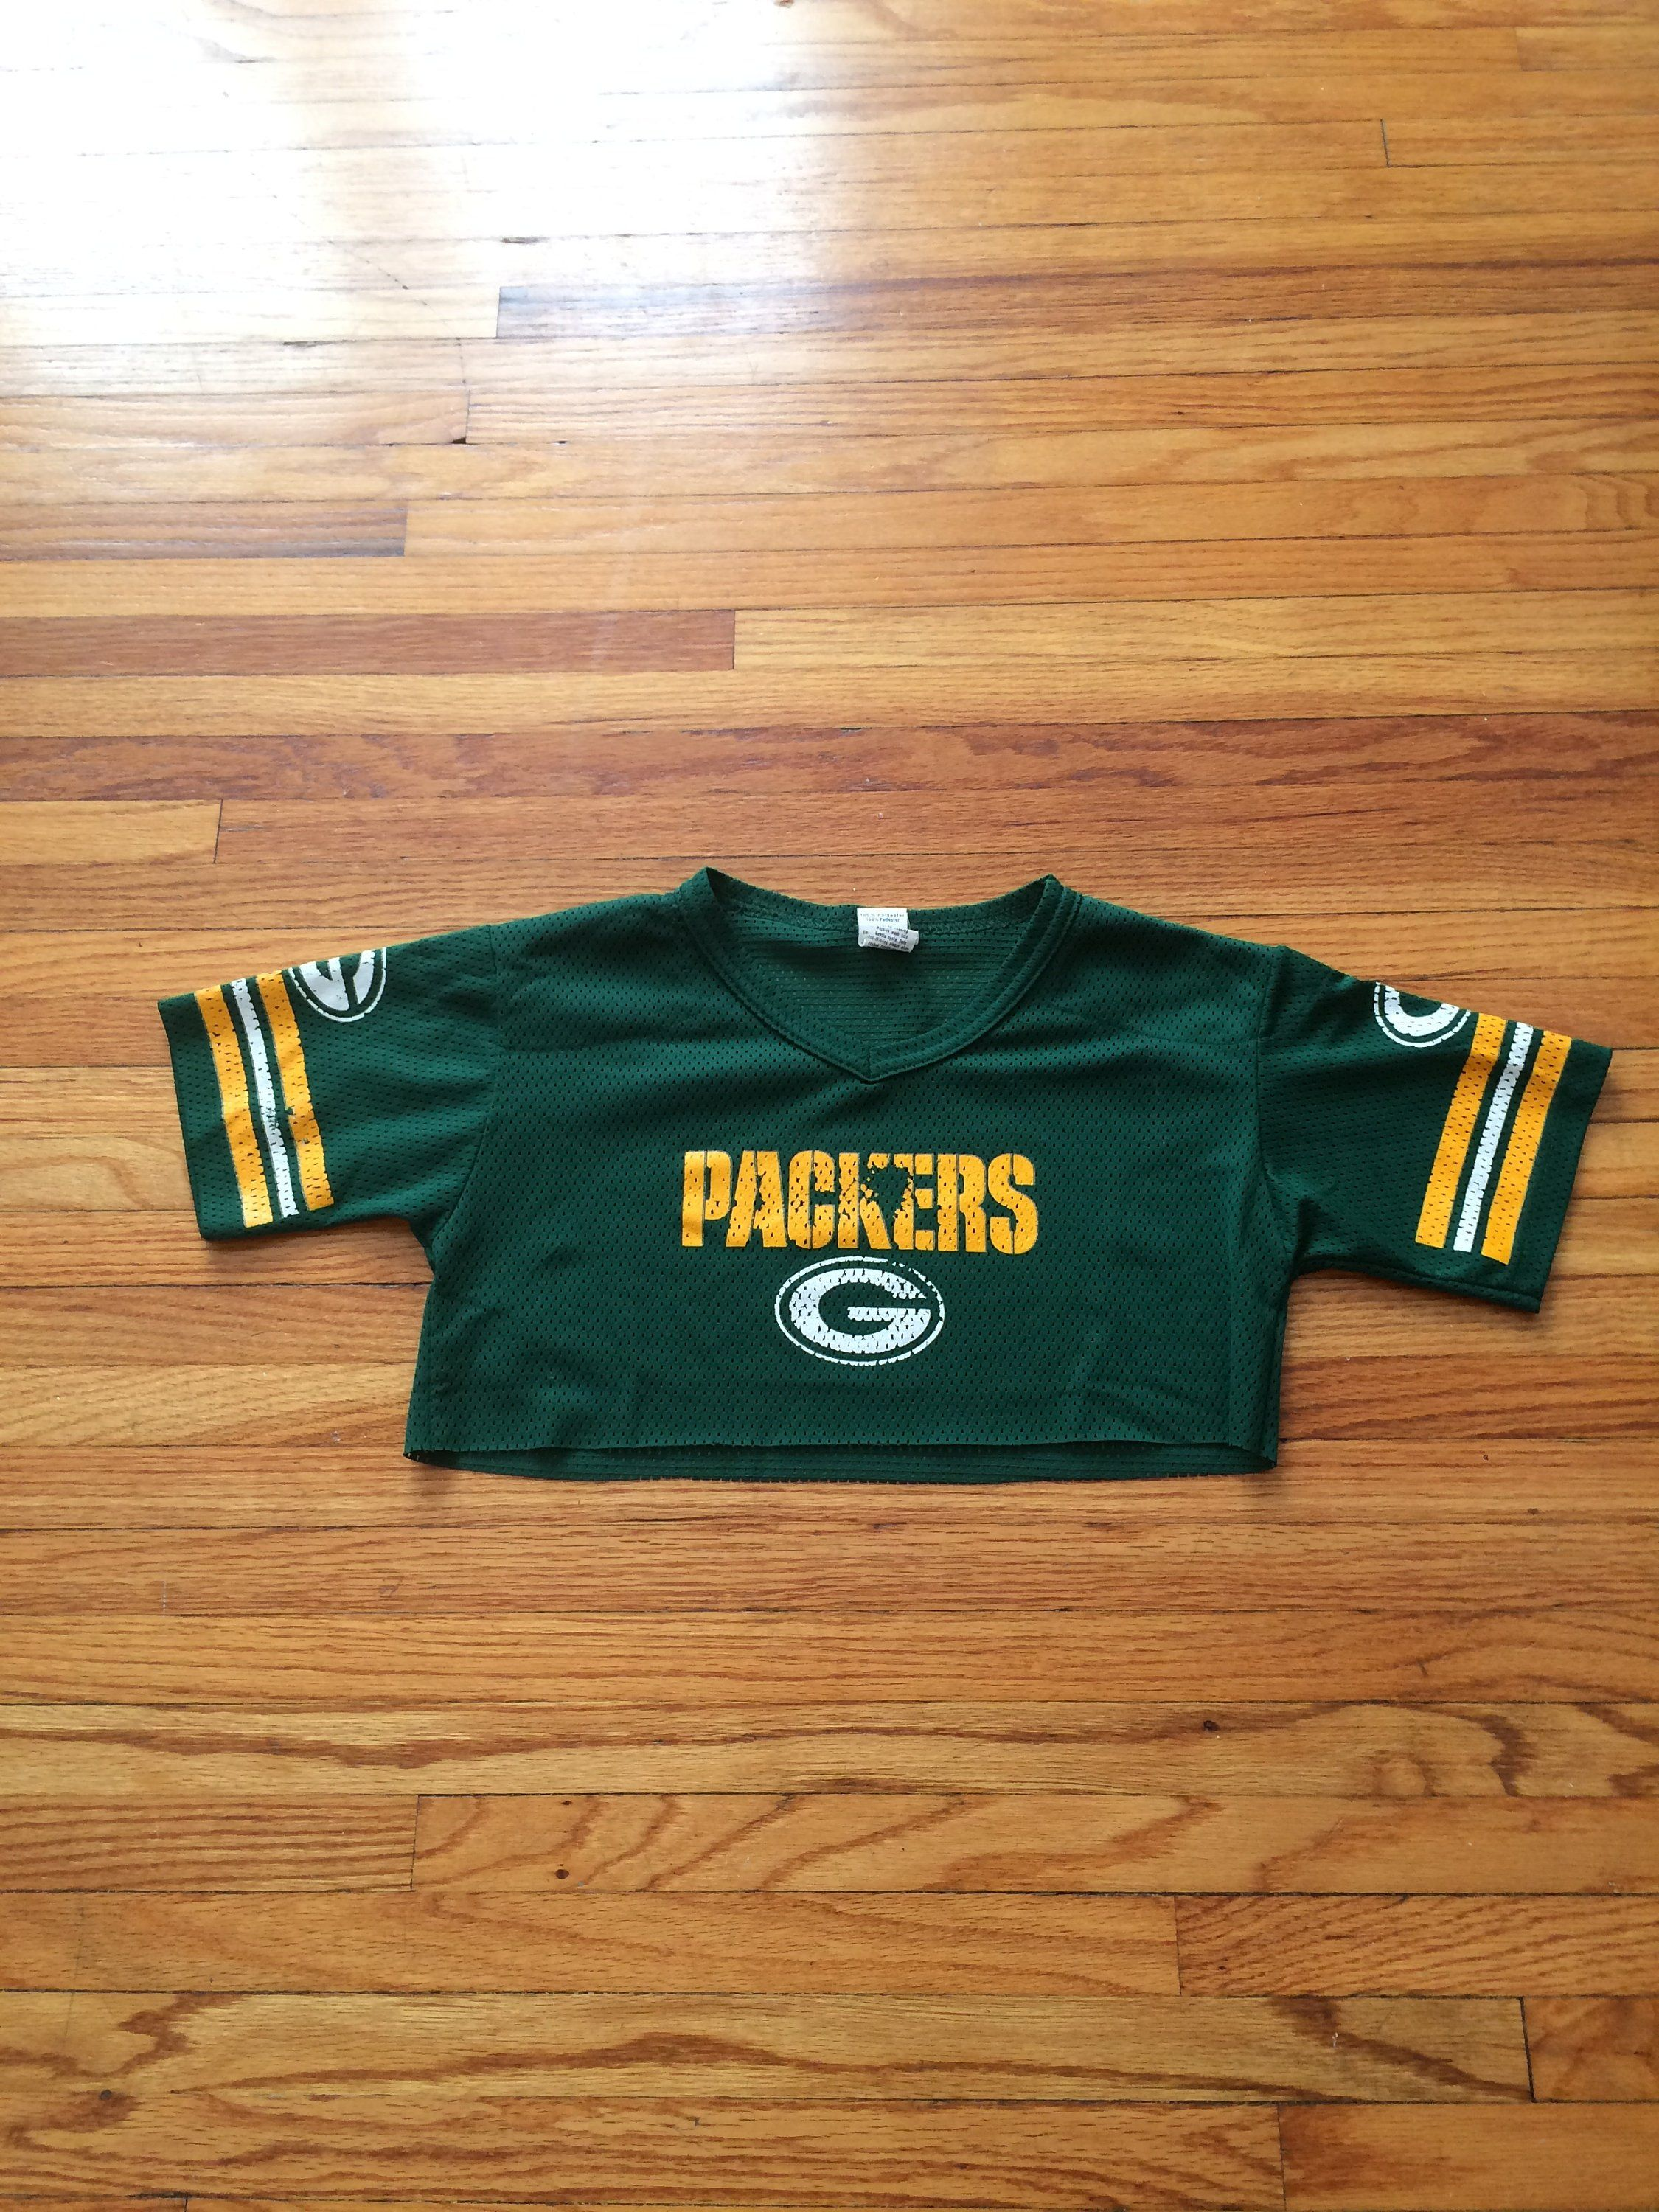 Vintage Green Bay Packers Short Sleeve Franklin Crop Top Nfl Football Jersey Free Shipping By Vintagevanshop On Etsy Crop Tops Women Mens Tops Tops